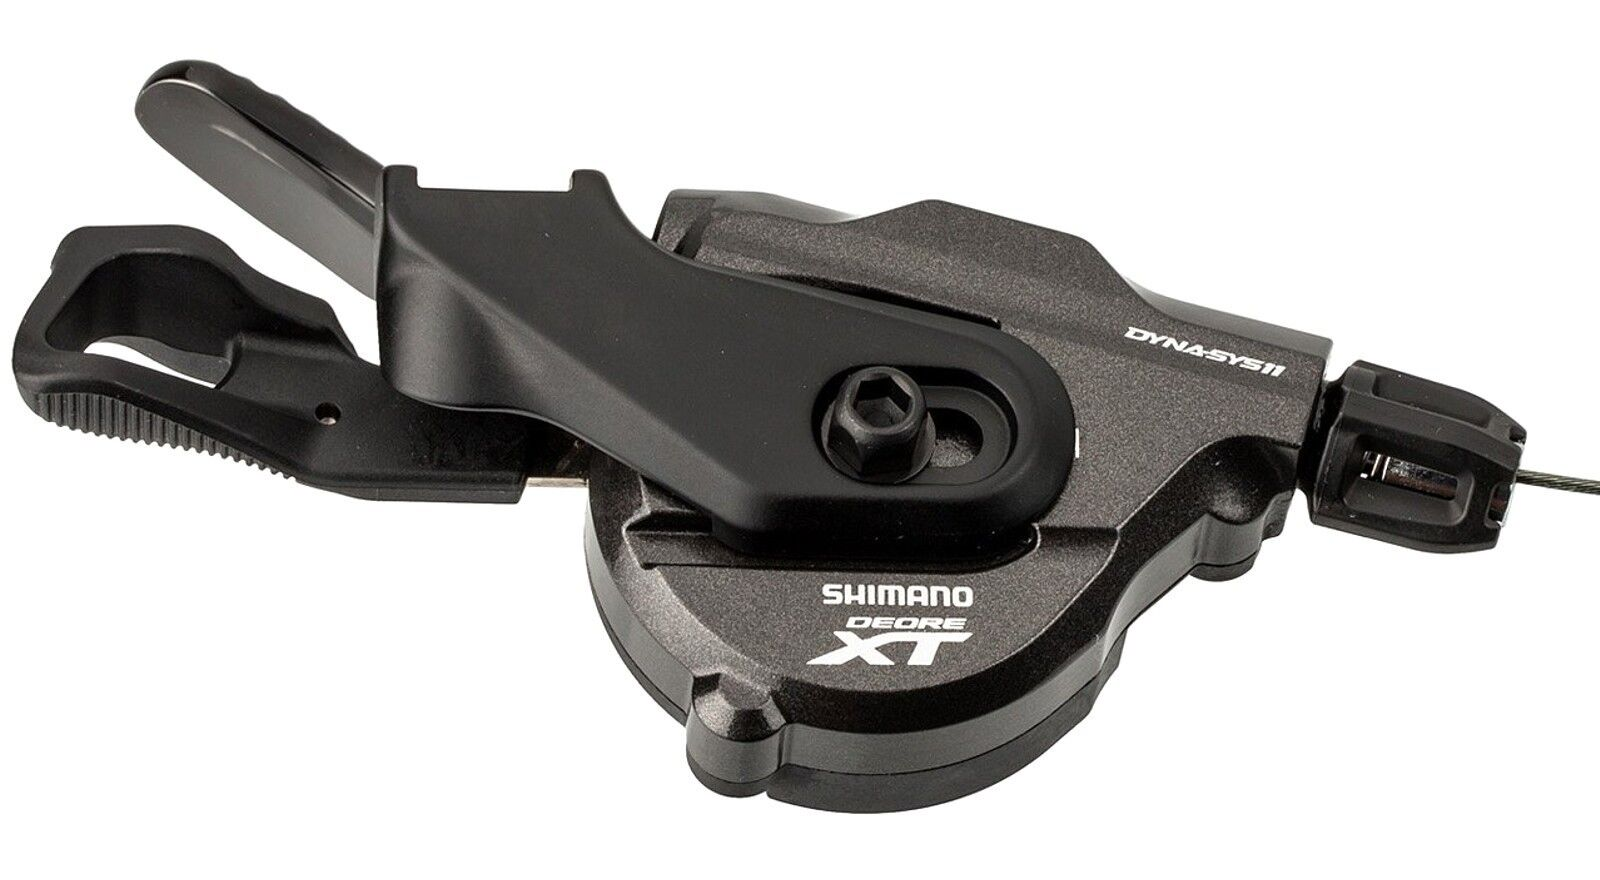 Shimano Deore XT SL-M8000 11 Speed Right Hand Shifter Rapid Fire Pod - iSpec B